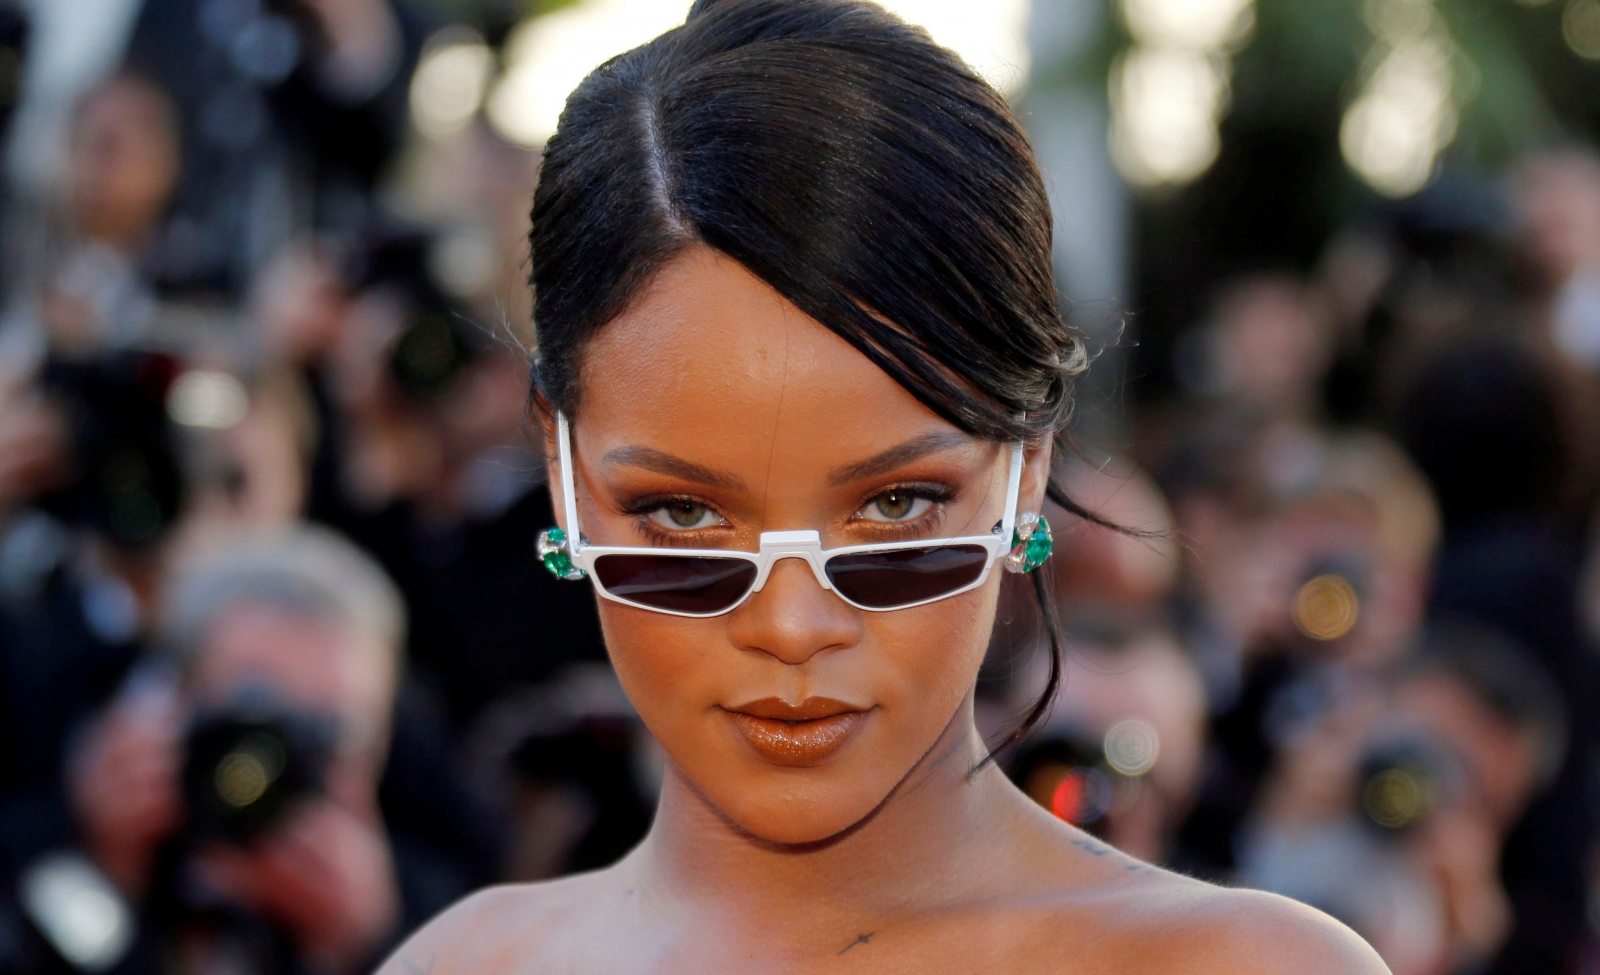 Rihanna's mystery man revealed as Saudi businessman